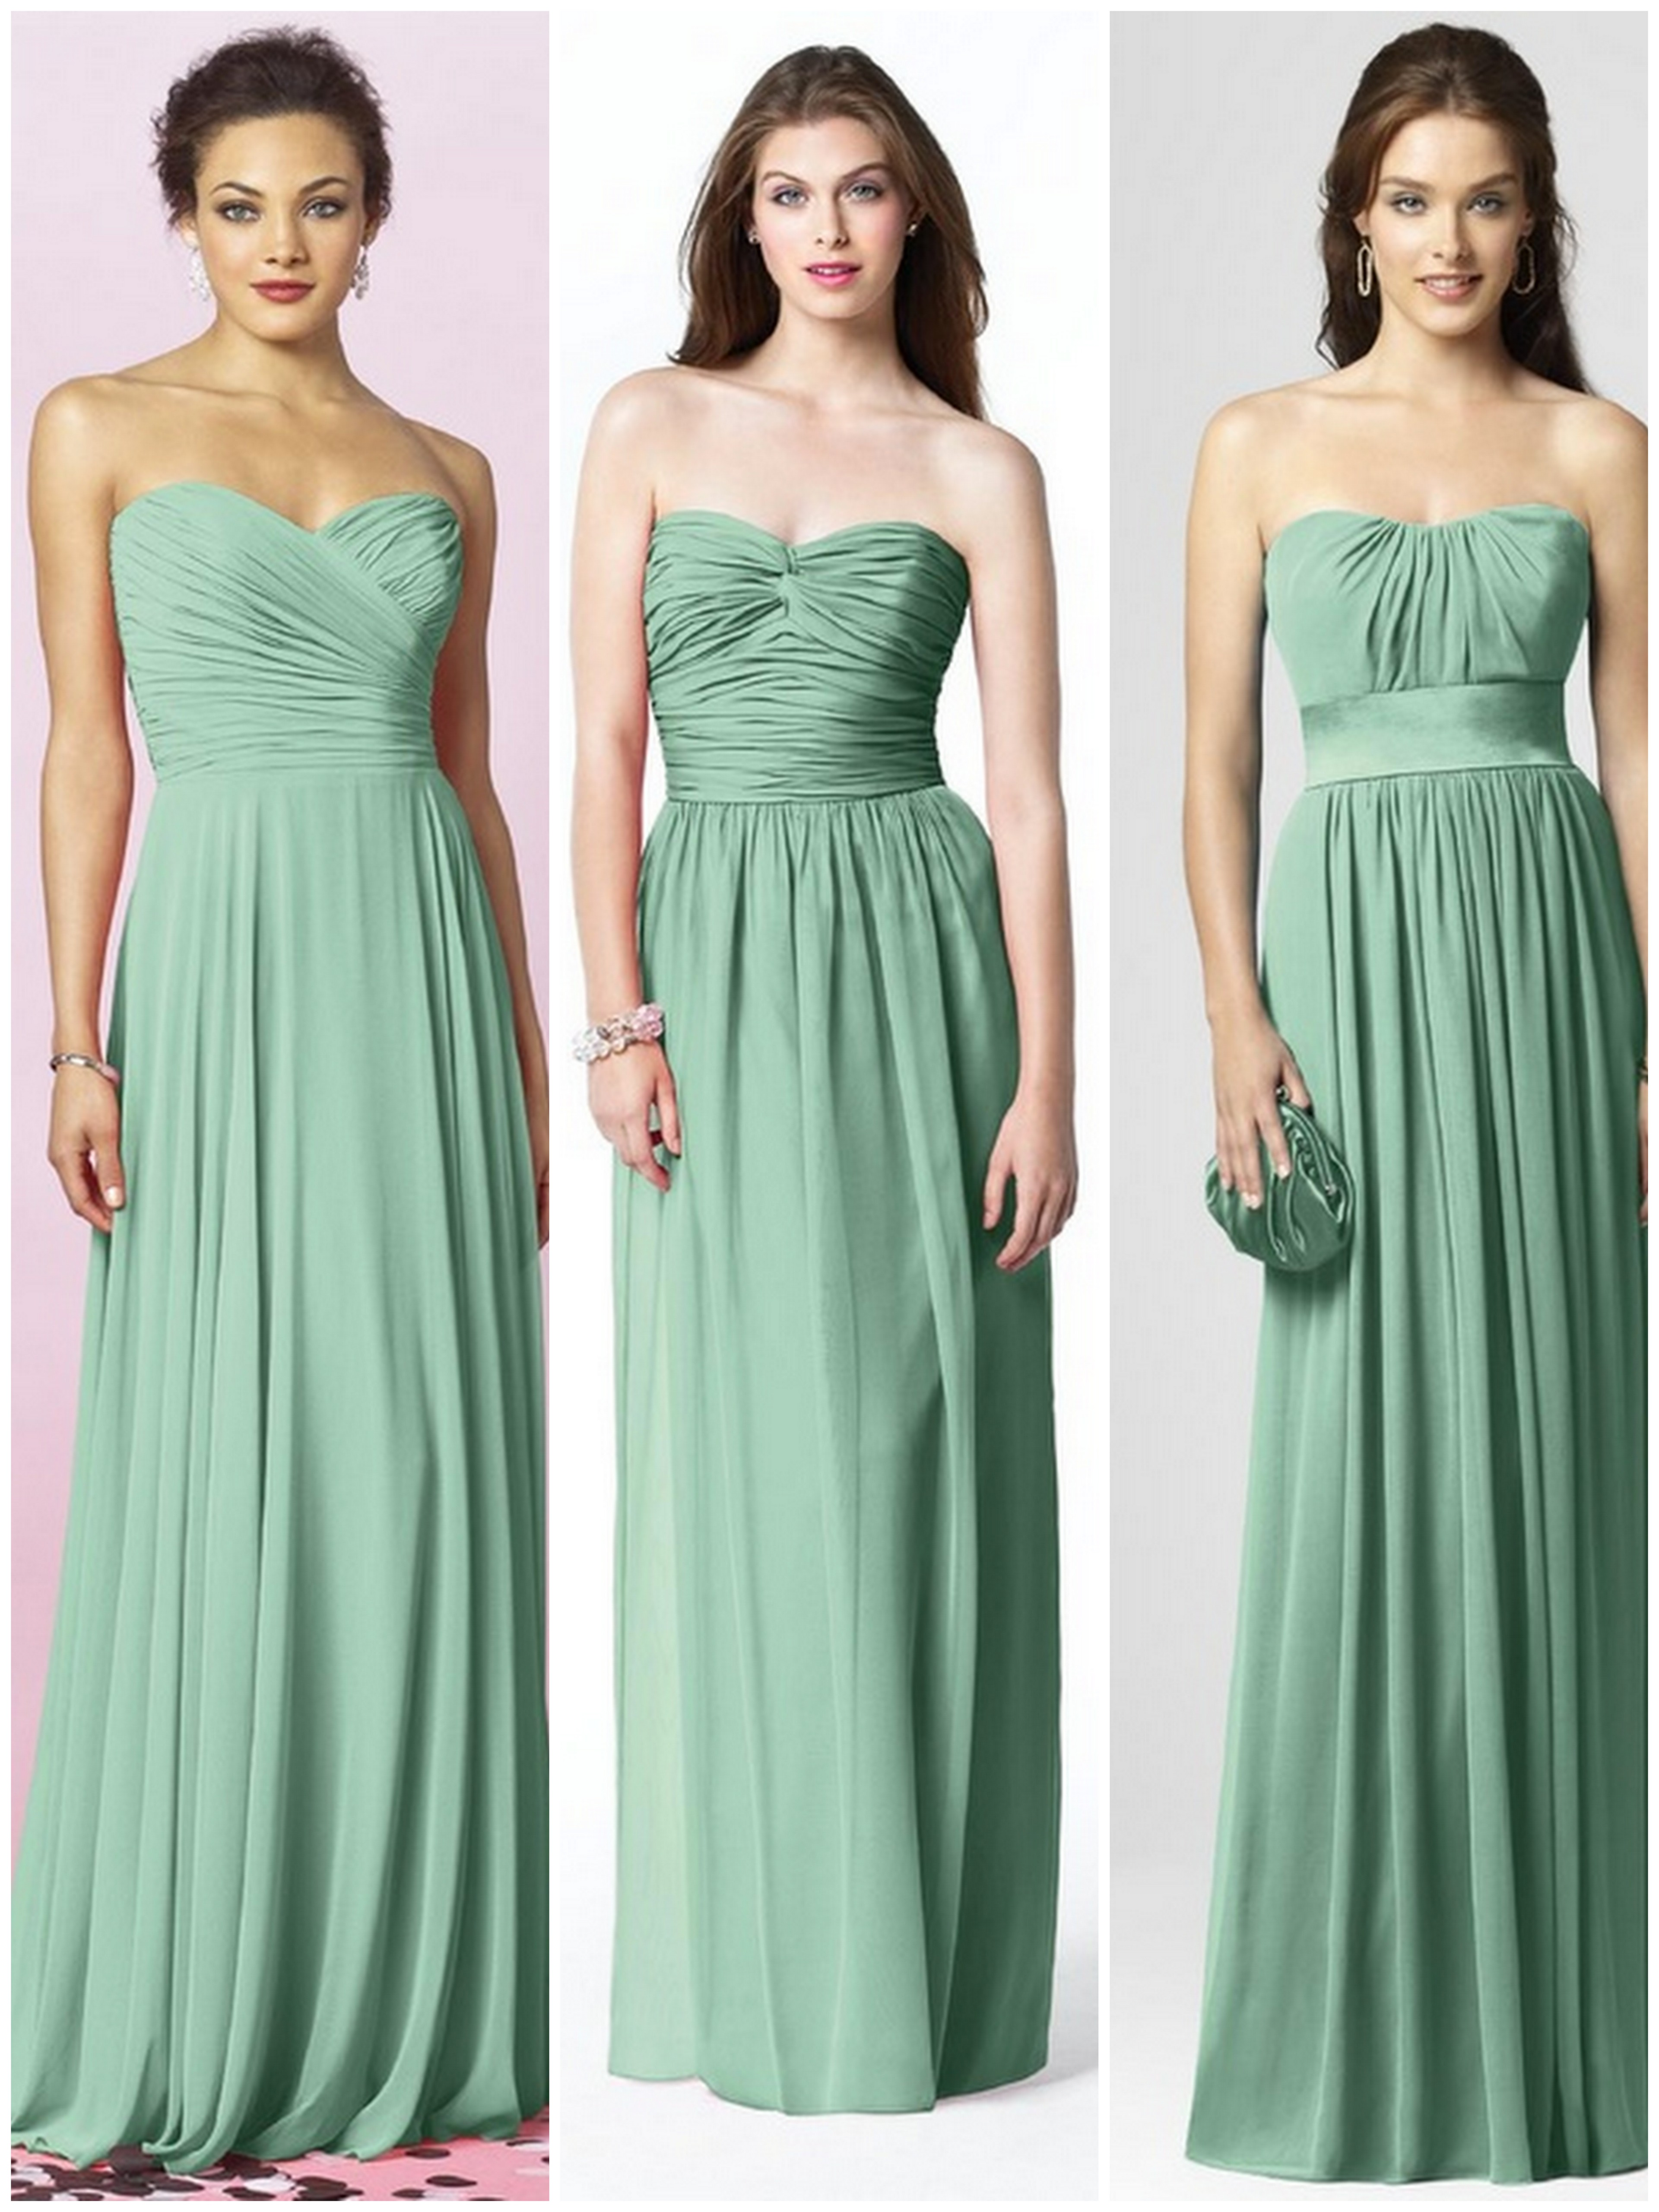 Green blue bridesmaid dresses beauandarrowevents real bride blogger jessica seafoam celedon and mint oh my ombrellifo Choice Image